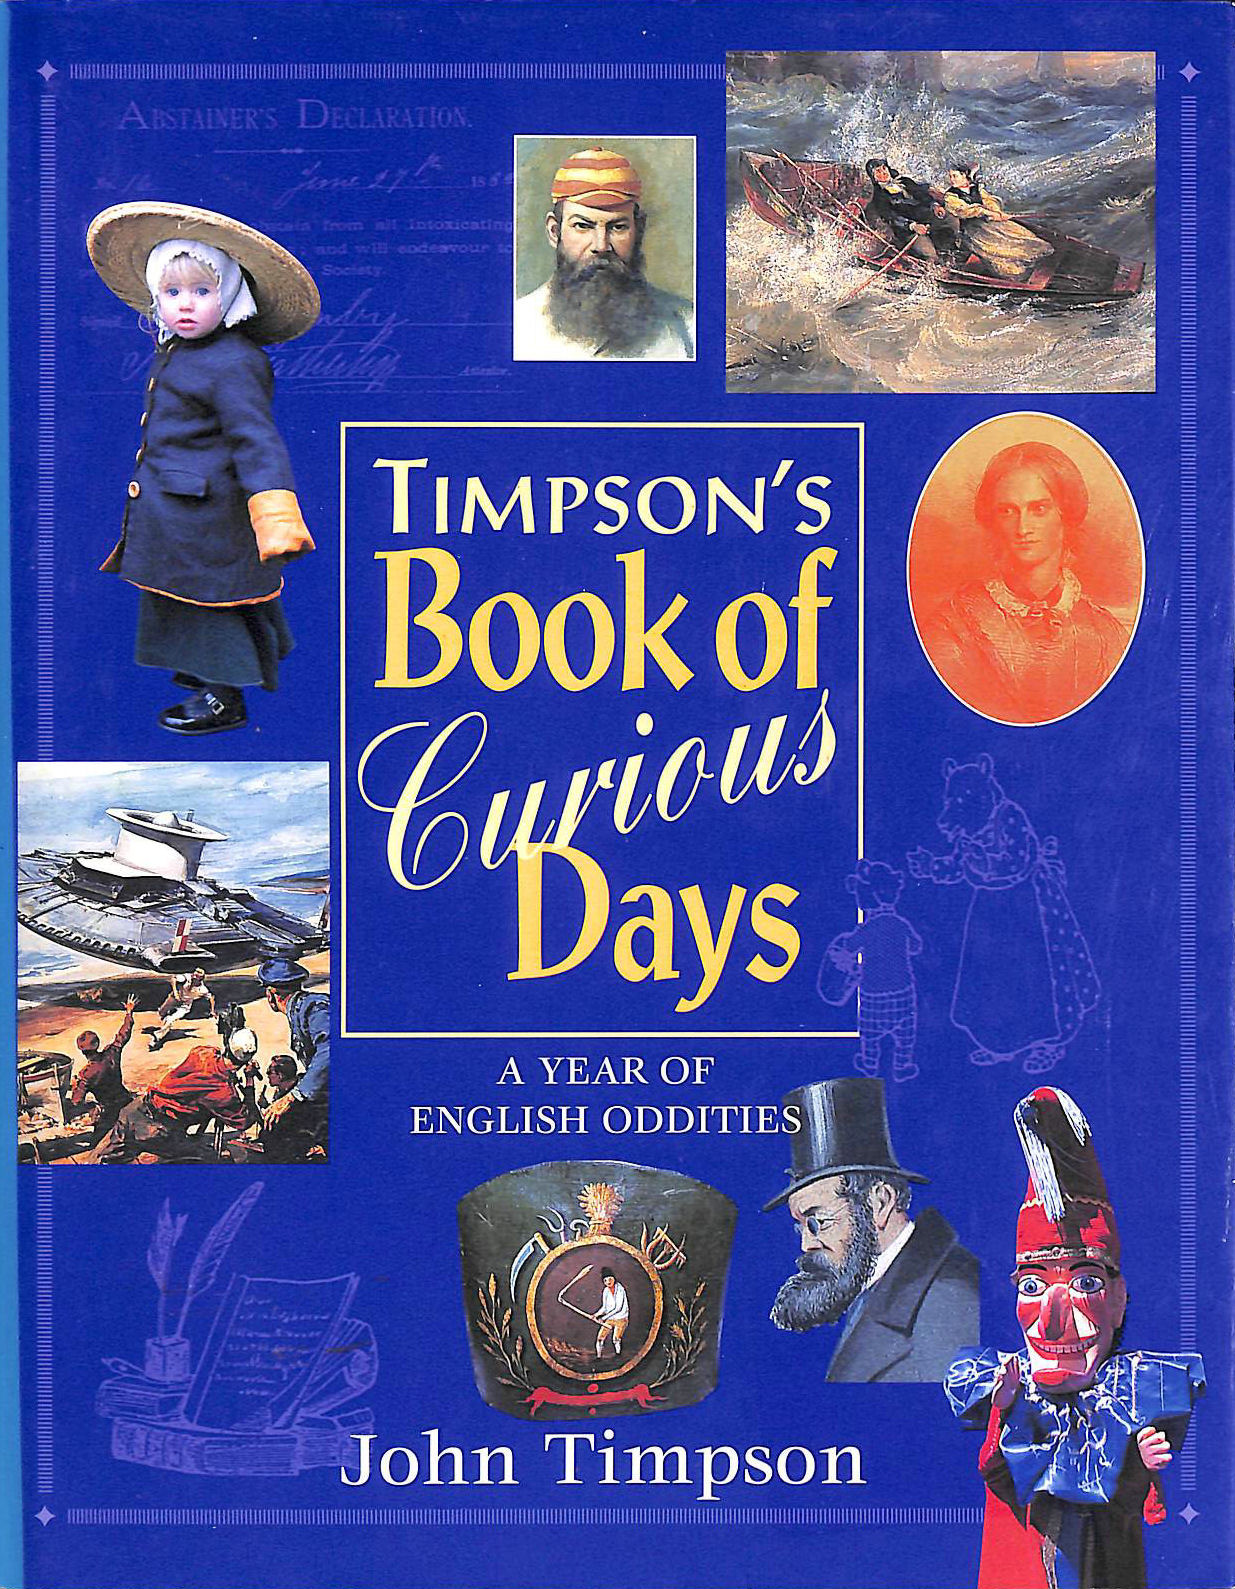 Image for Timpson's Book of Curious Days: A Year Book of English Oddities